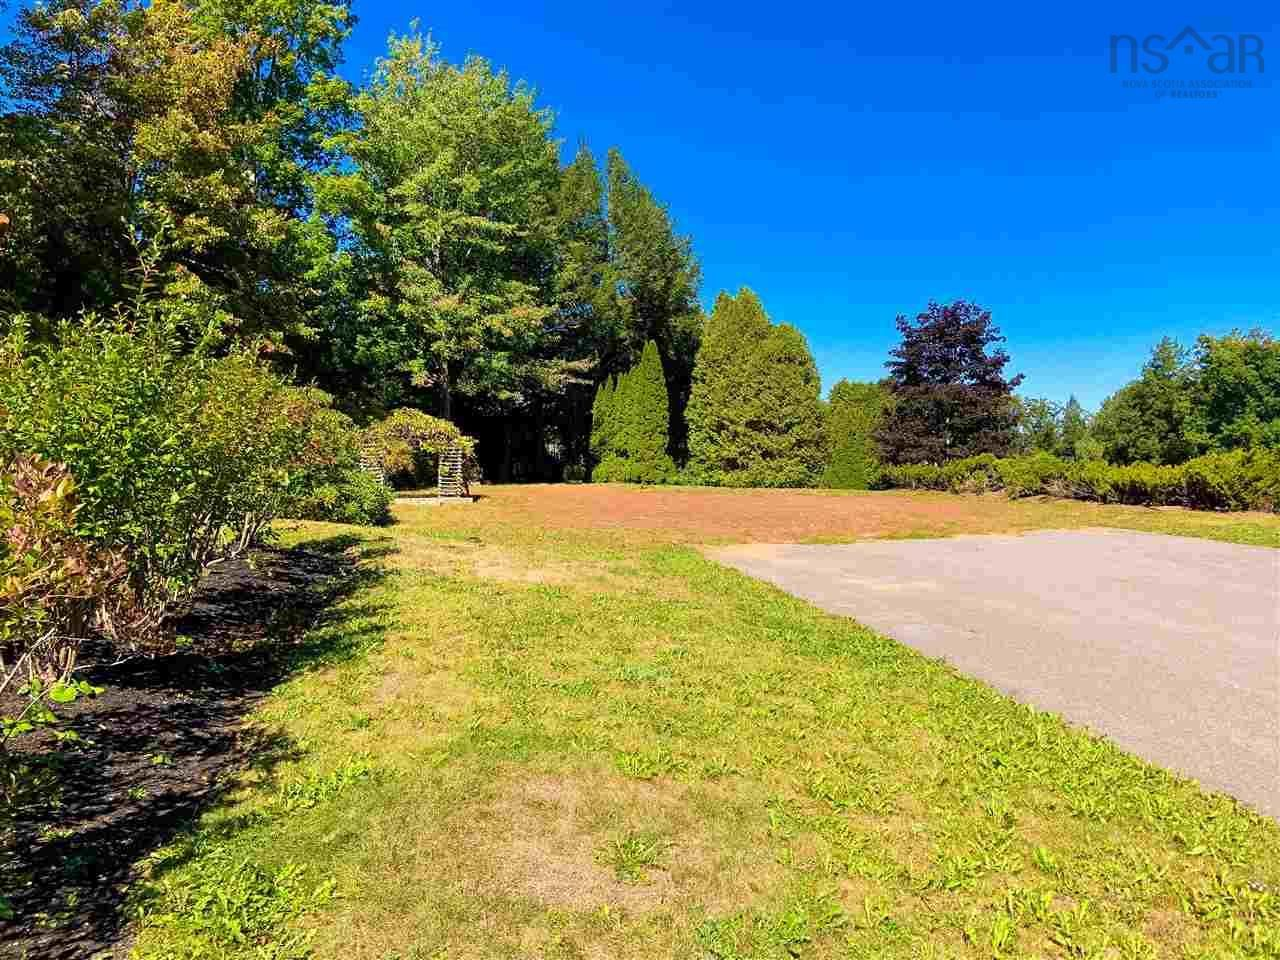 Main Photo: 57 MacDonald Park Road in Kentville: 404-Kings County Vacant Land for sale (Annapolis Valley)  : MLS®# 202125103